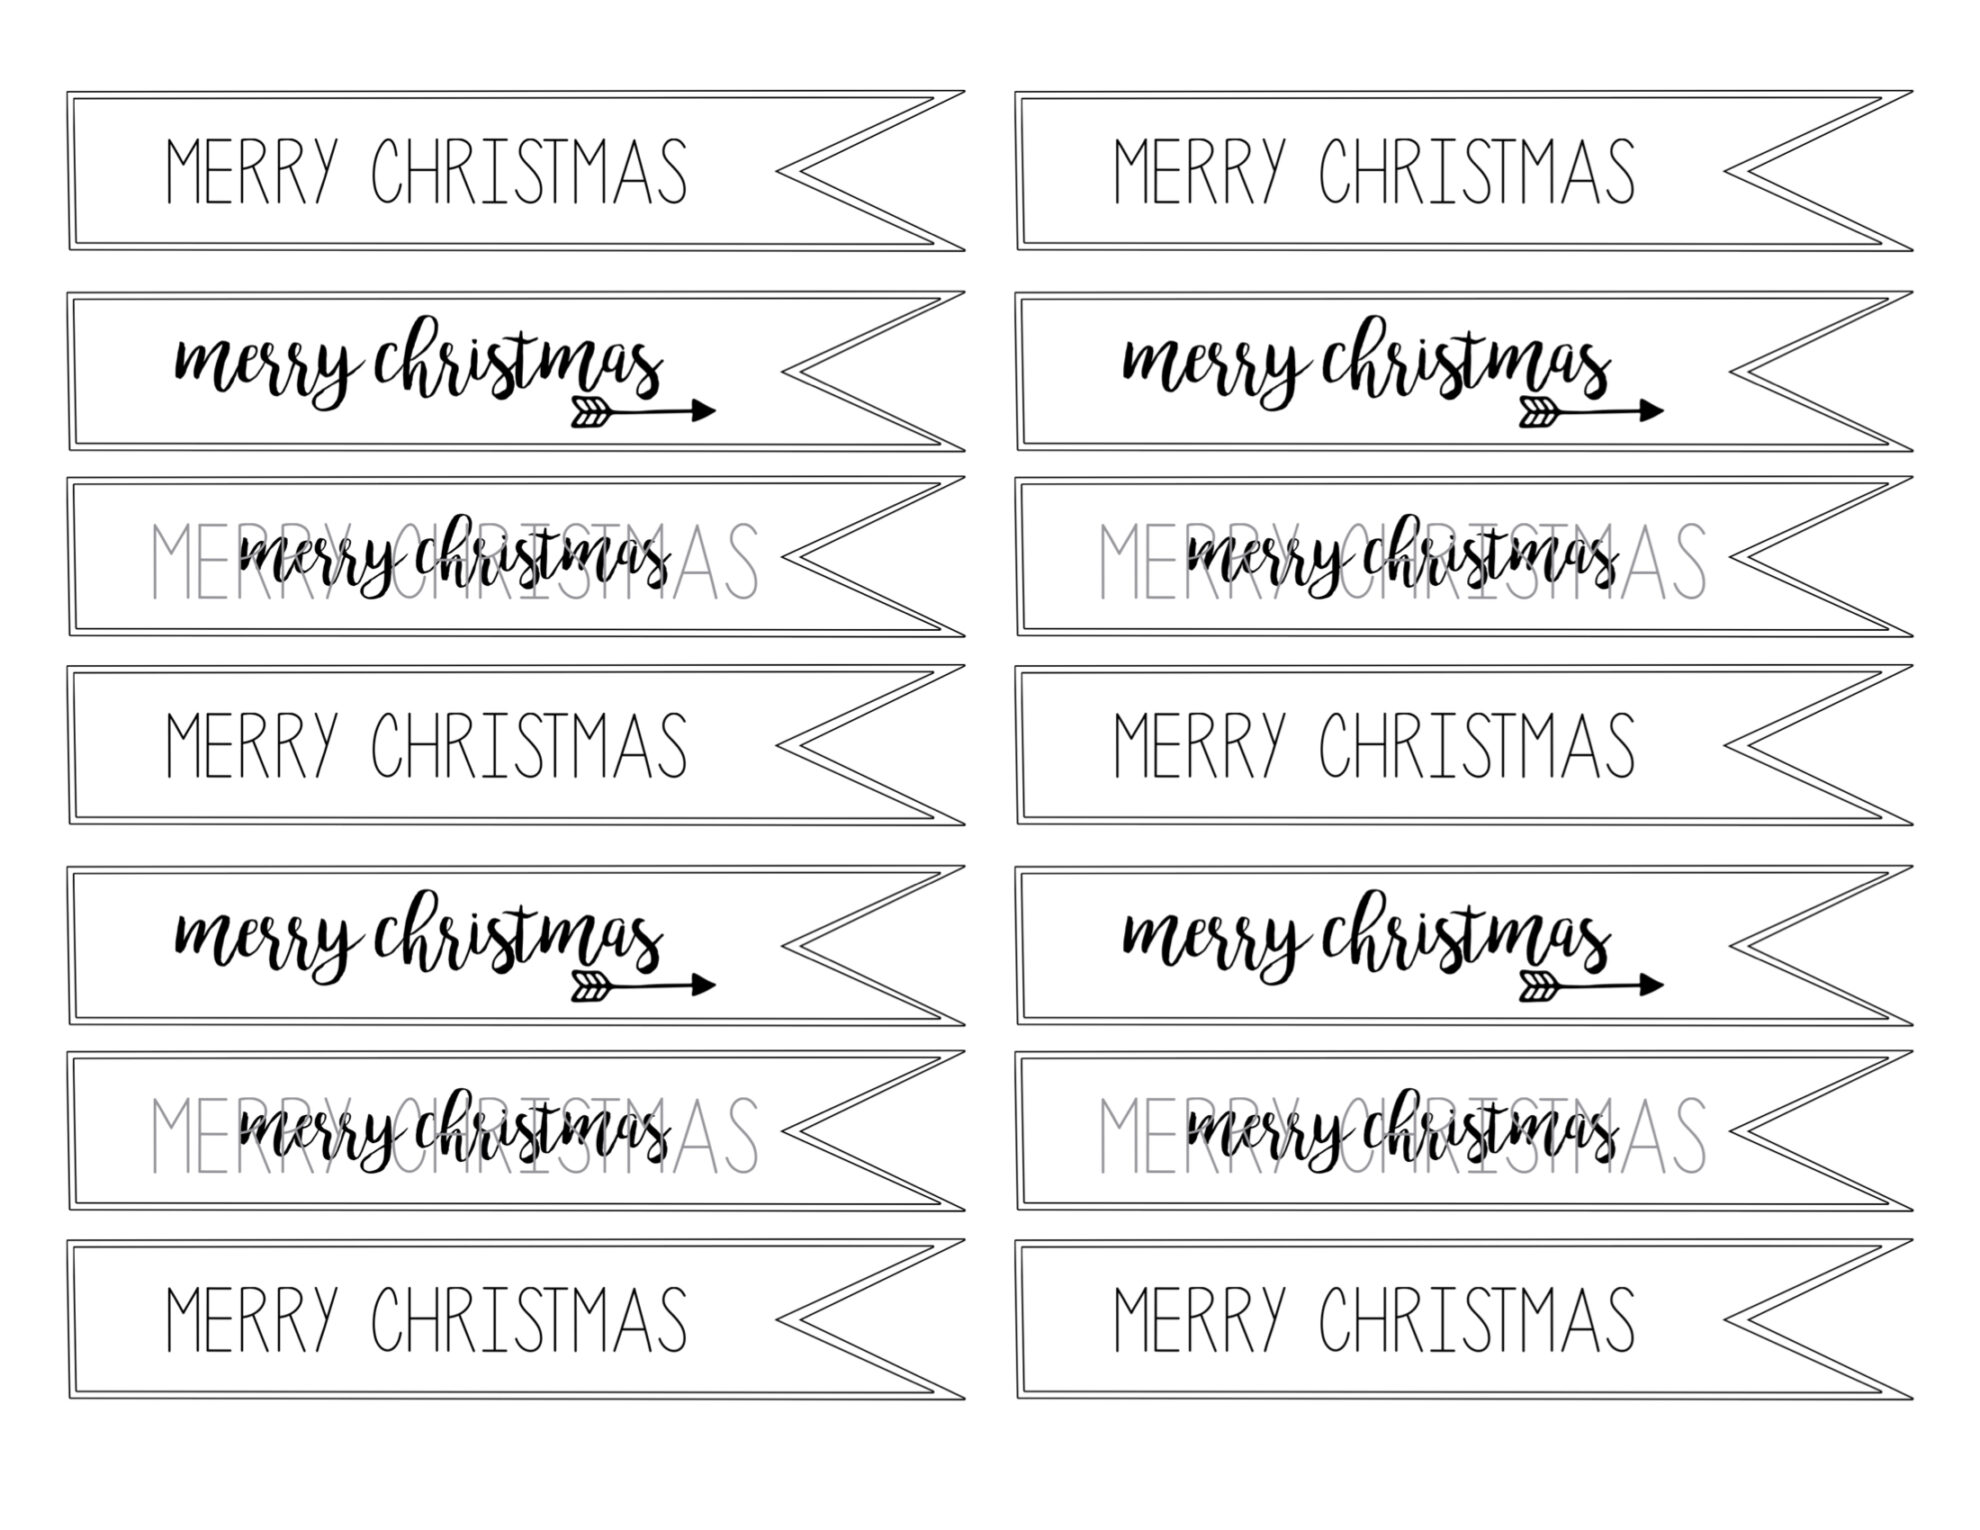 picture regarding Merry Christmas Tags Free Printable named Merry Xmas Tag Cost-free Printable - Paper Path Style and design